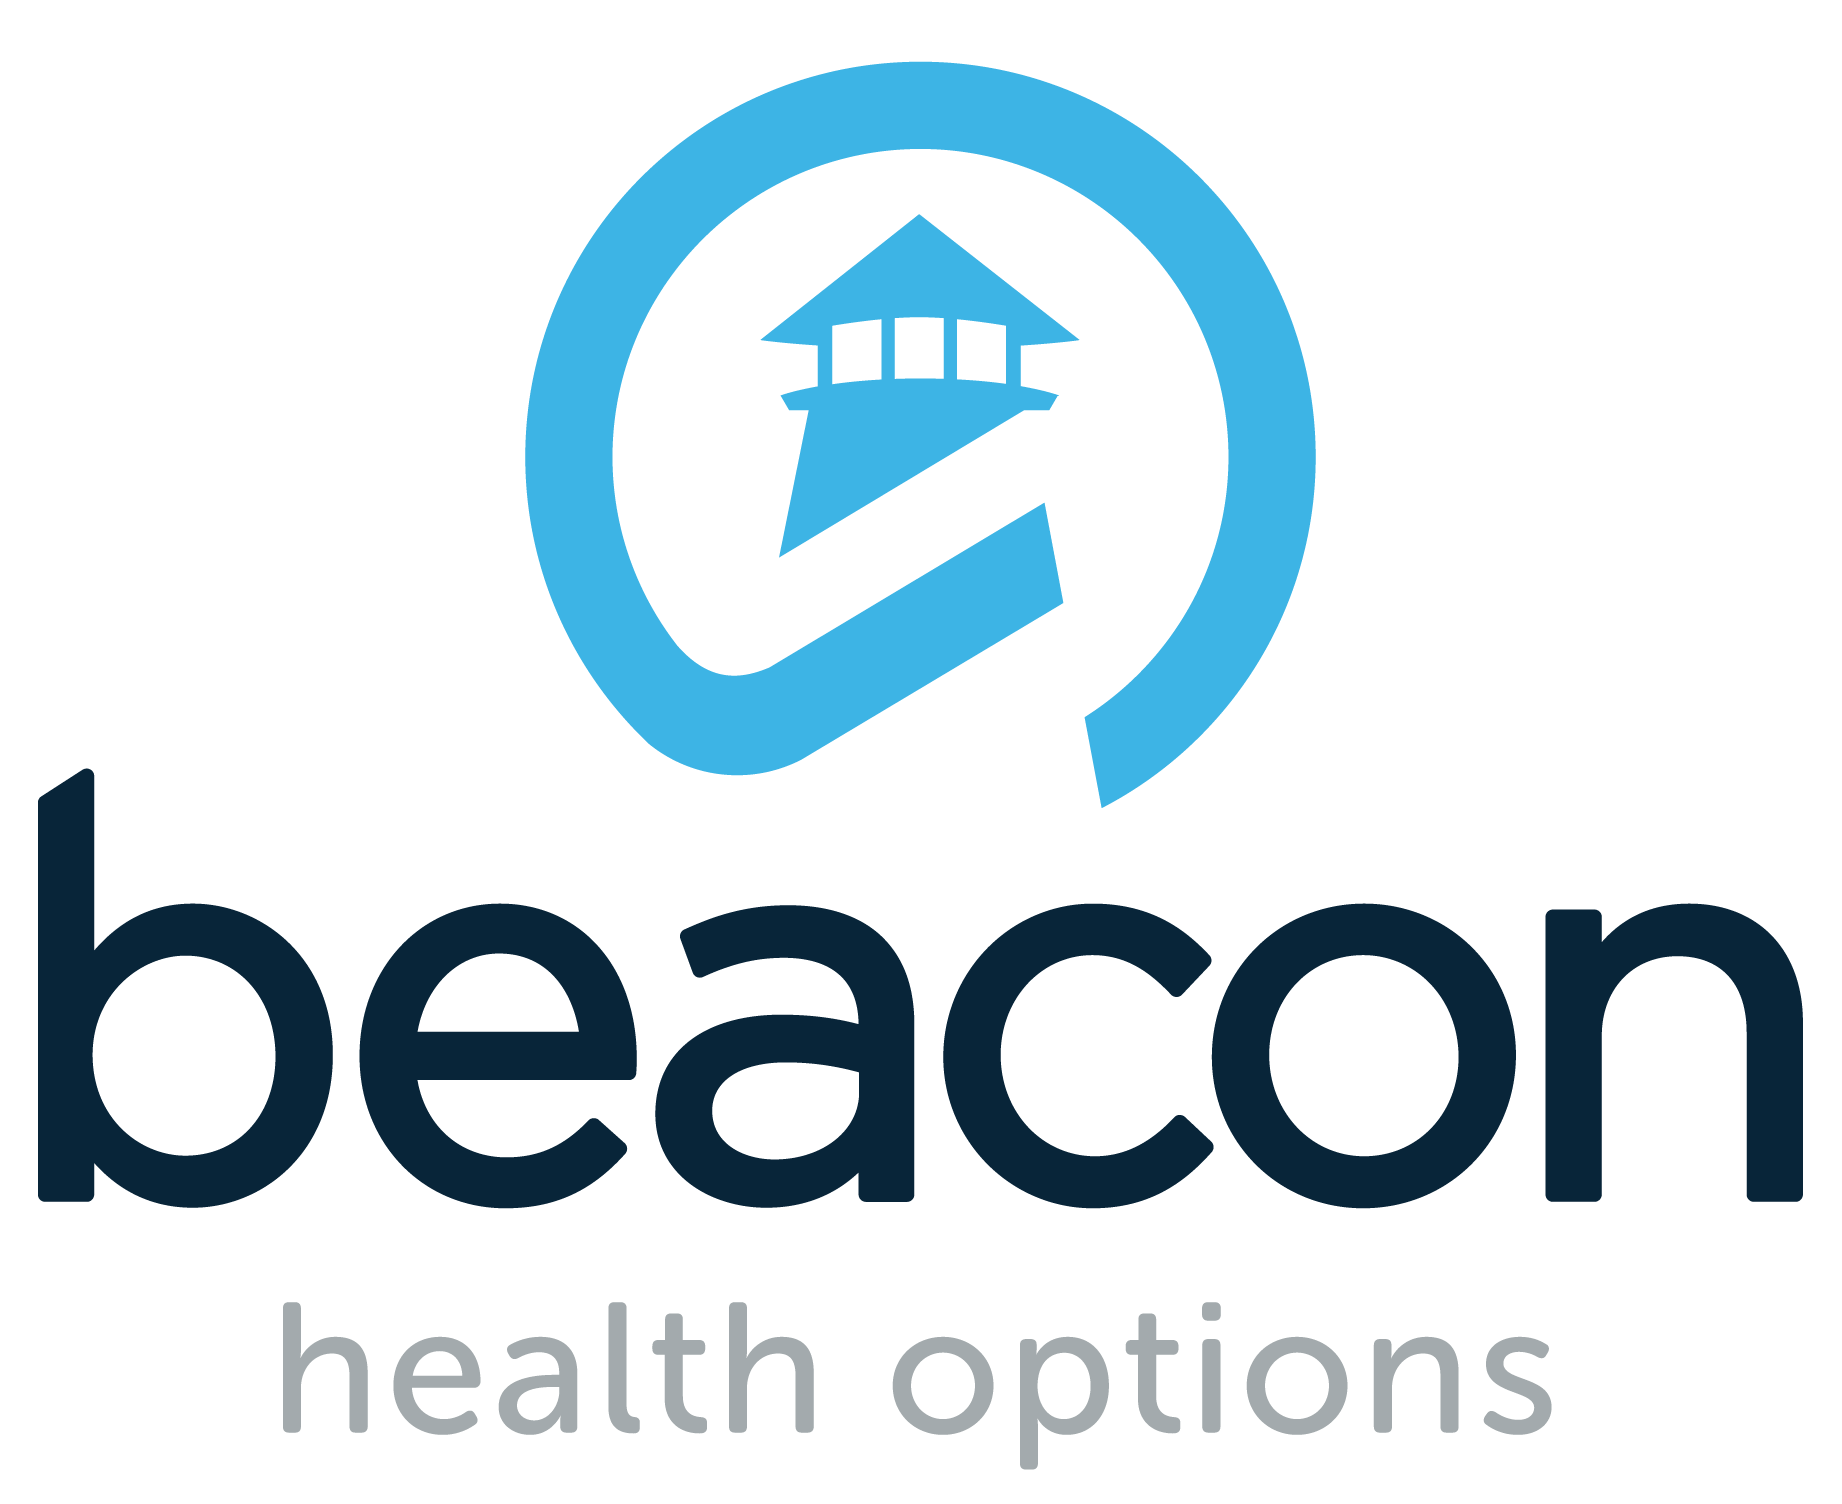 beacon-logo-2.png